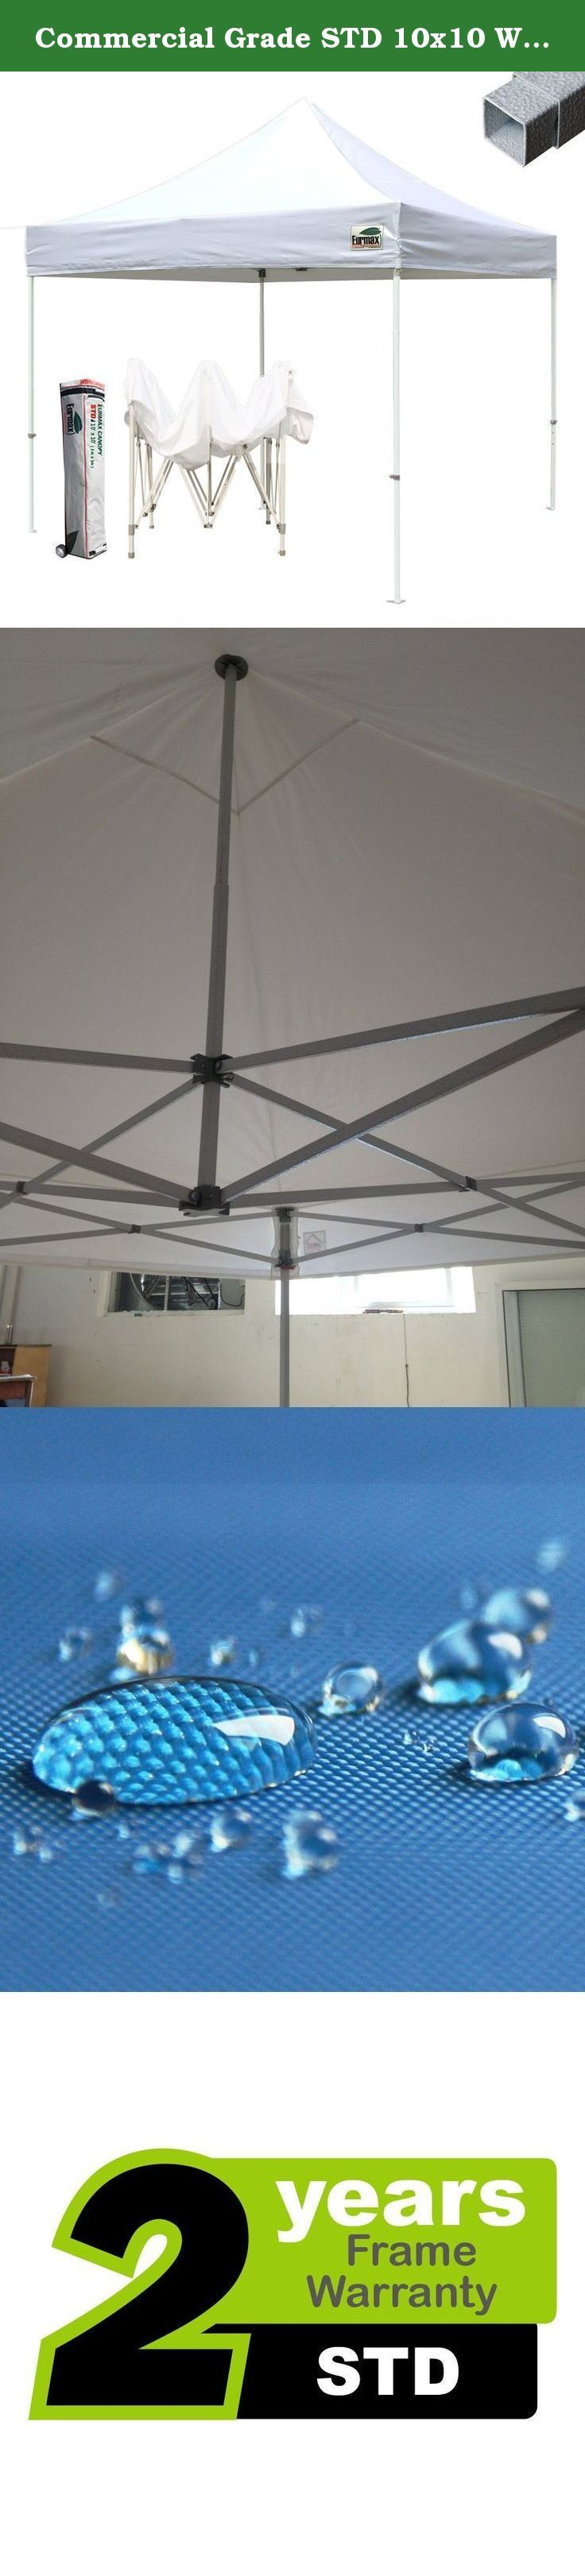 Commercial Grade STD 10x10 White Canopy Tent Pop up Gazebo Canopy Shelter with Wheeled Bag. Eurmax Std 10x10 canopy tent is our Commercial grade pop up gazebo, this is a classic steel pop up gazebo which combine quality and cost effective. It can be quickly erected by one or two people without any tools. The Std pop up gazebo come with a heavy duty wheeled bag and it is great for outdoor festivals, wedding, party, markets, concessions, sporting events and more. One important reason for...